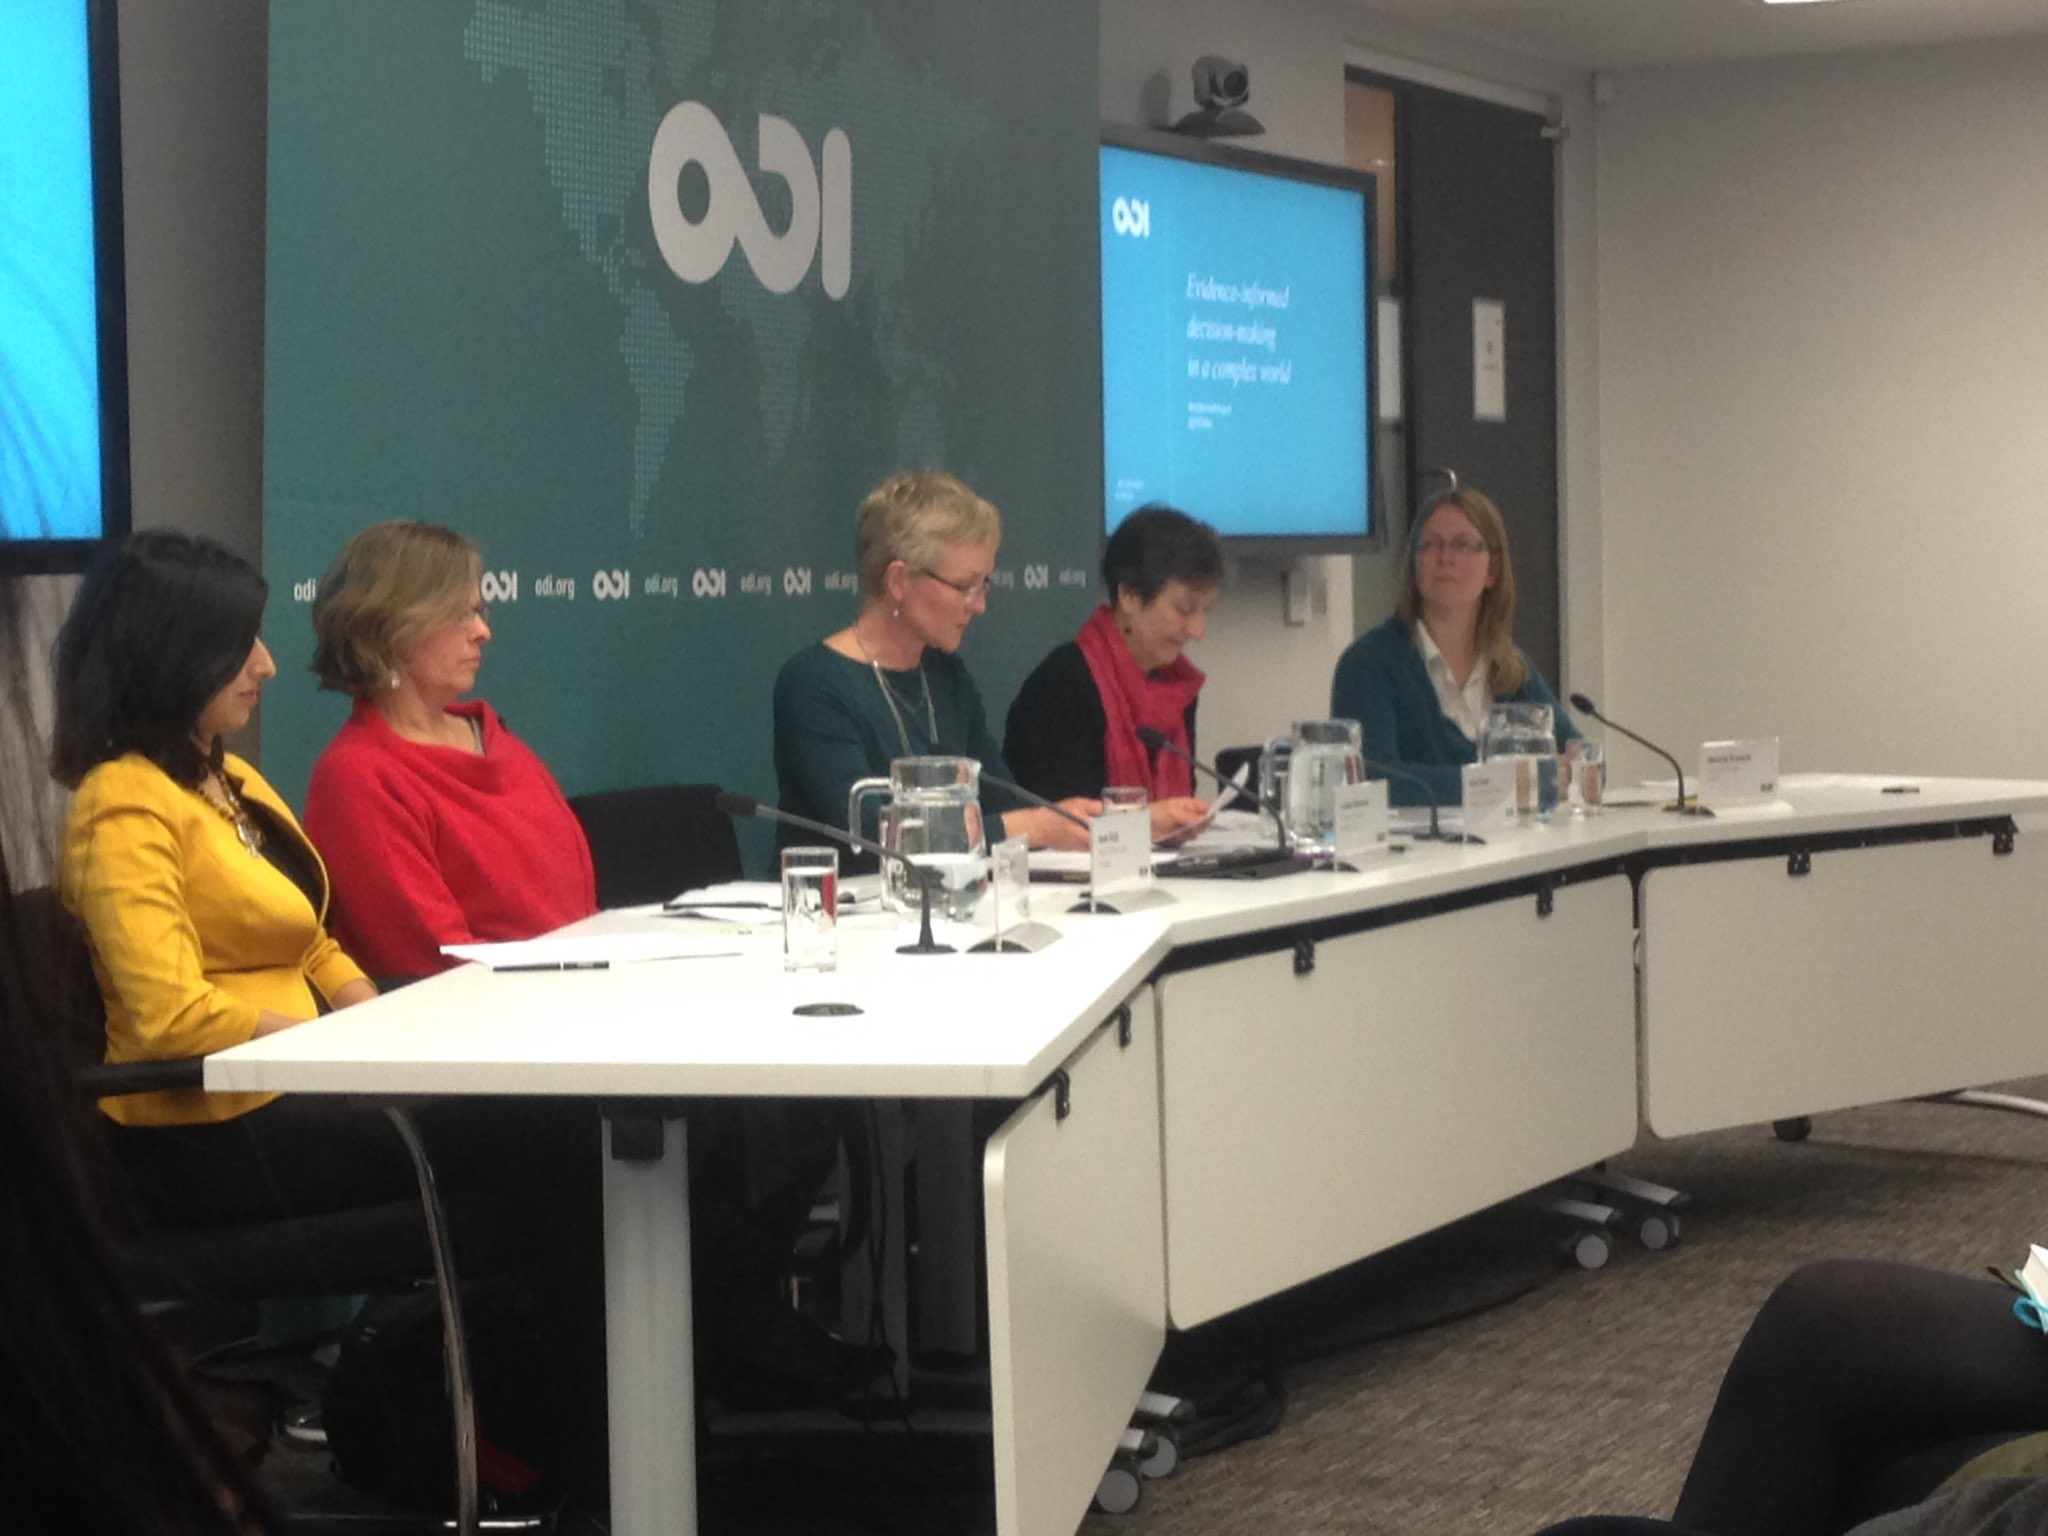 Female only panel in the discussion on 'evidence-informed decision-making in a complex world' at ODI. That's refreshing #evidence4impact https://t.co/HWGx463EVU